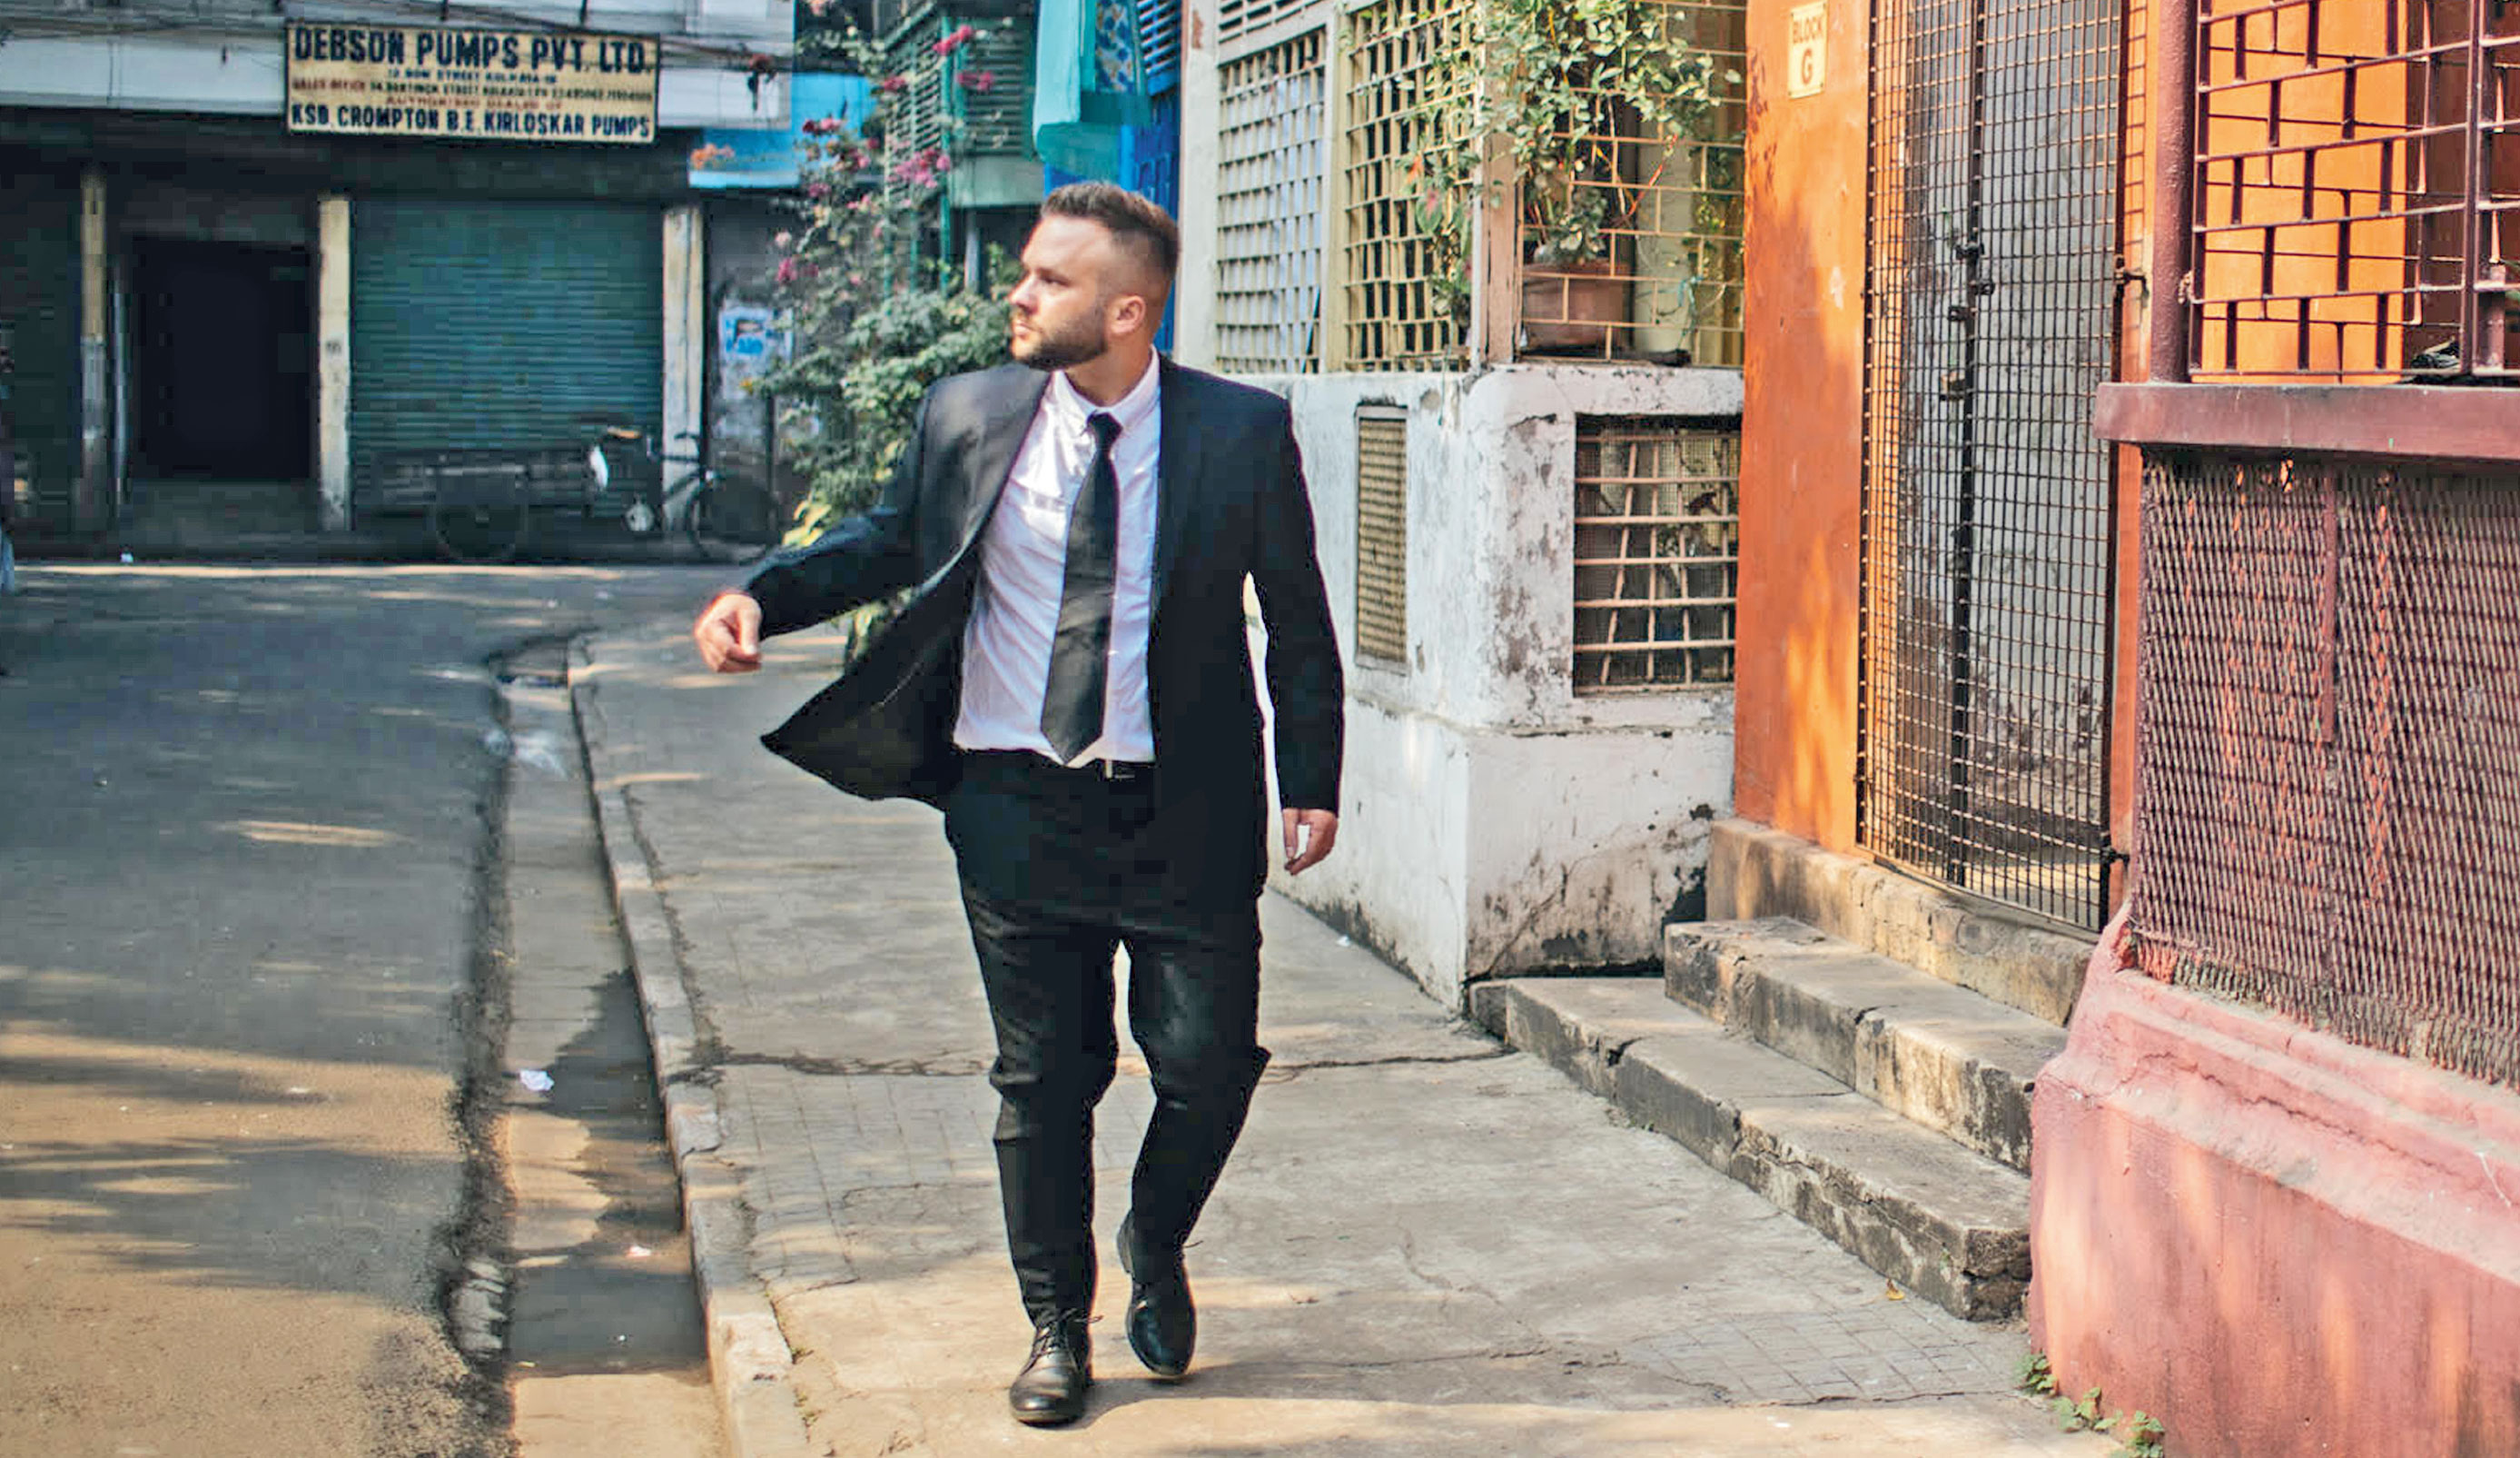 'Calcutta has my heart. It's one of my favourite cities and has some of my favourite people in it. I don't think I'll ever place a deadline on visits, and my connection with the city'